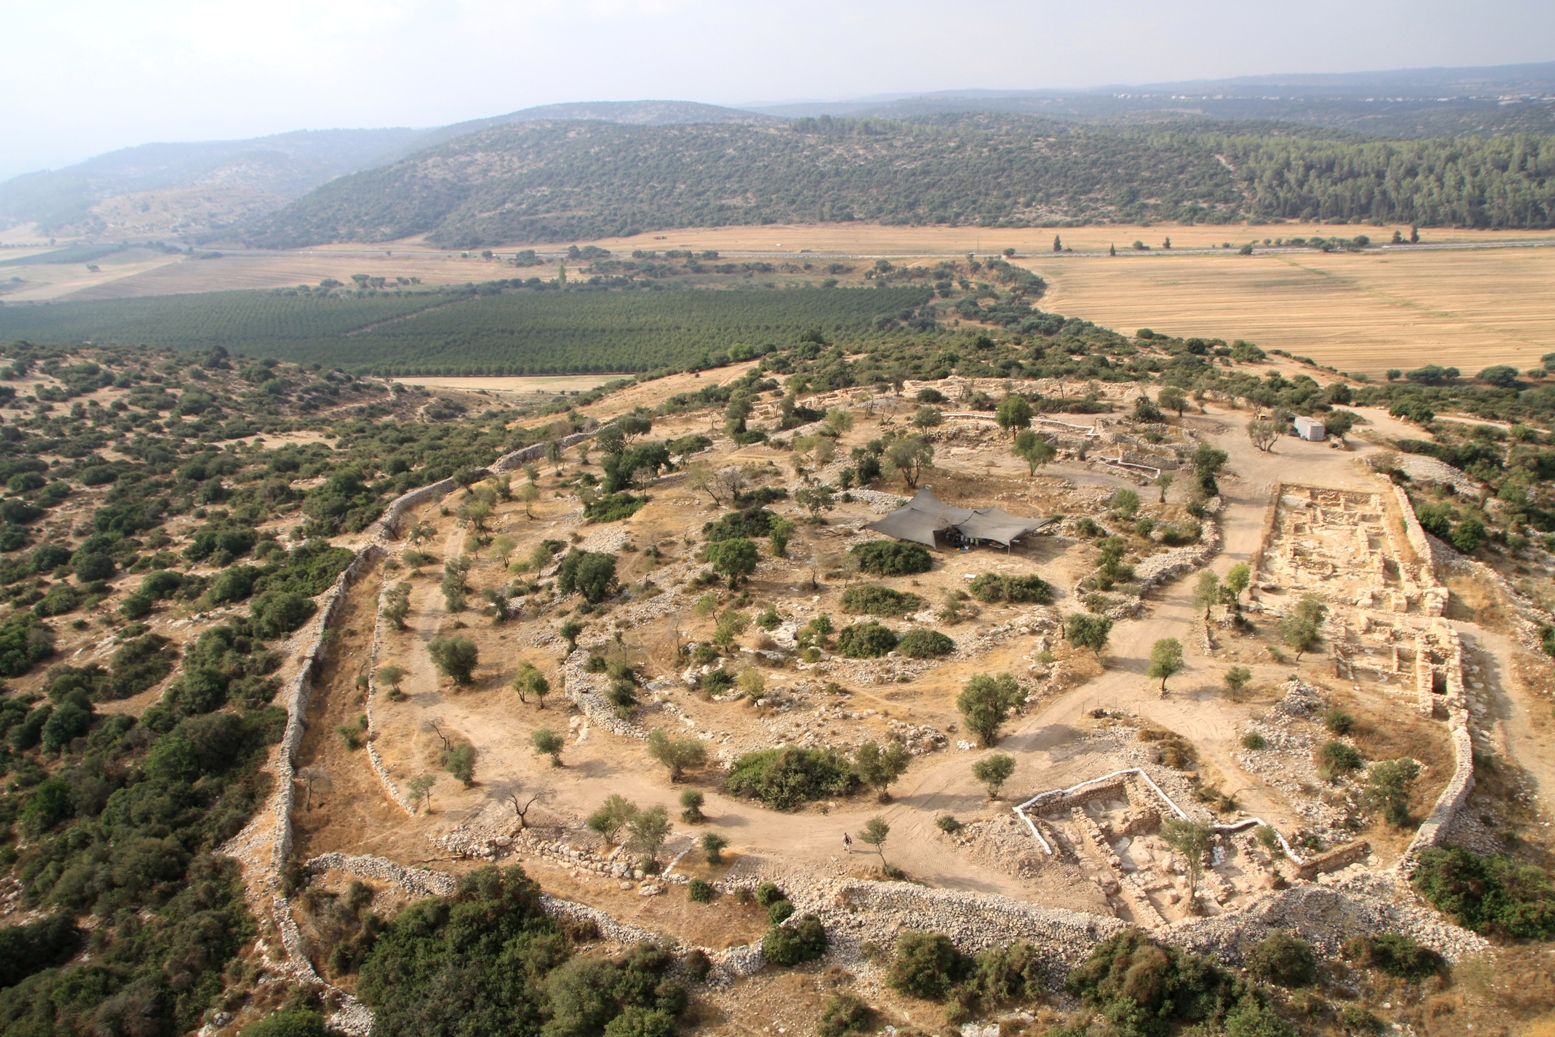 Khirbet Qeiyafa, where Luke participated in his first archaeological dig.